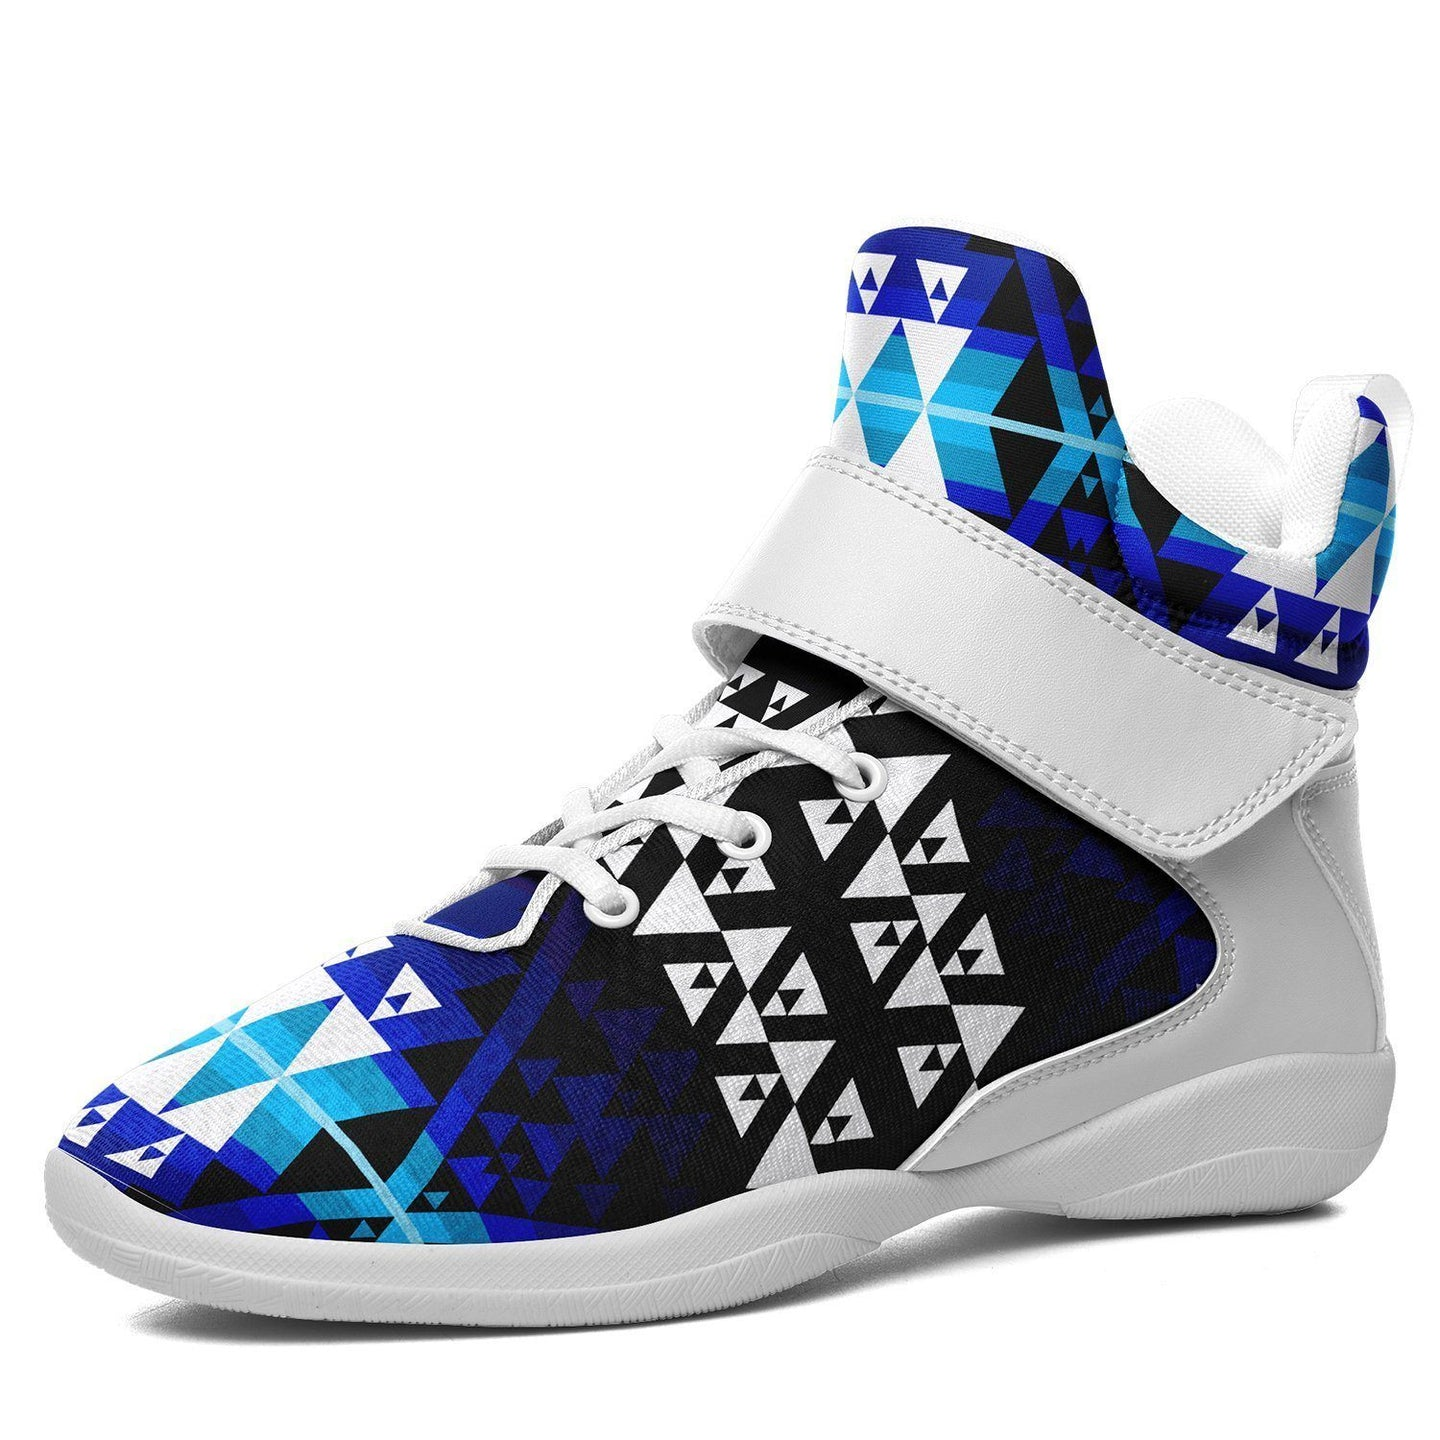 Writing on Stone Night Watch Kid's Ipottaa Basketball / Sport High Top Shoes 49 Dzine US Child 12.5 / EUR 30 White Sole with White Strap